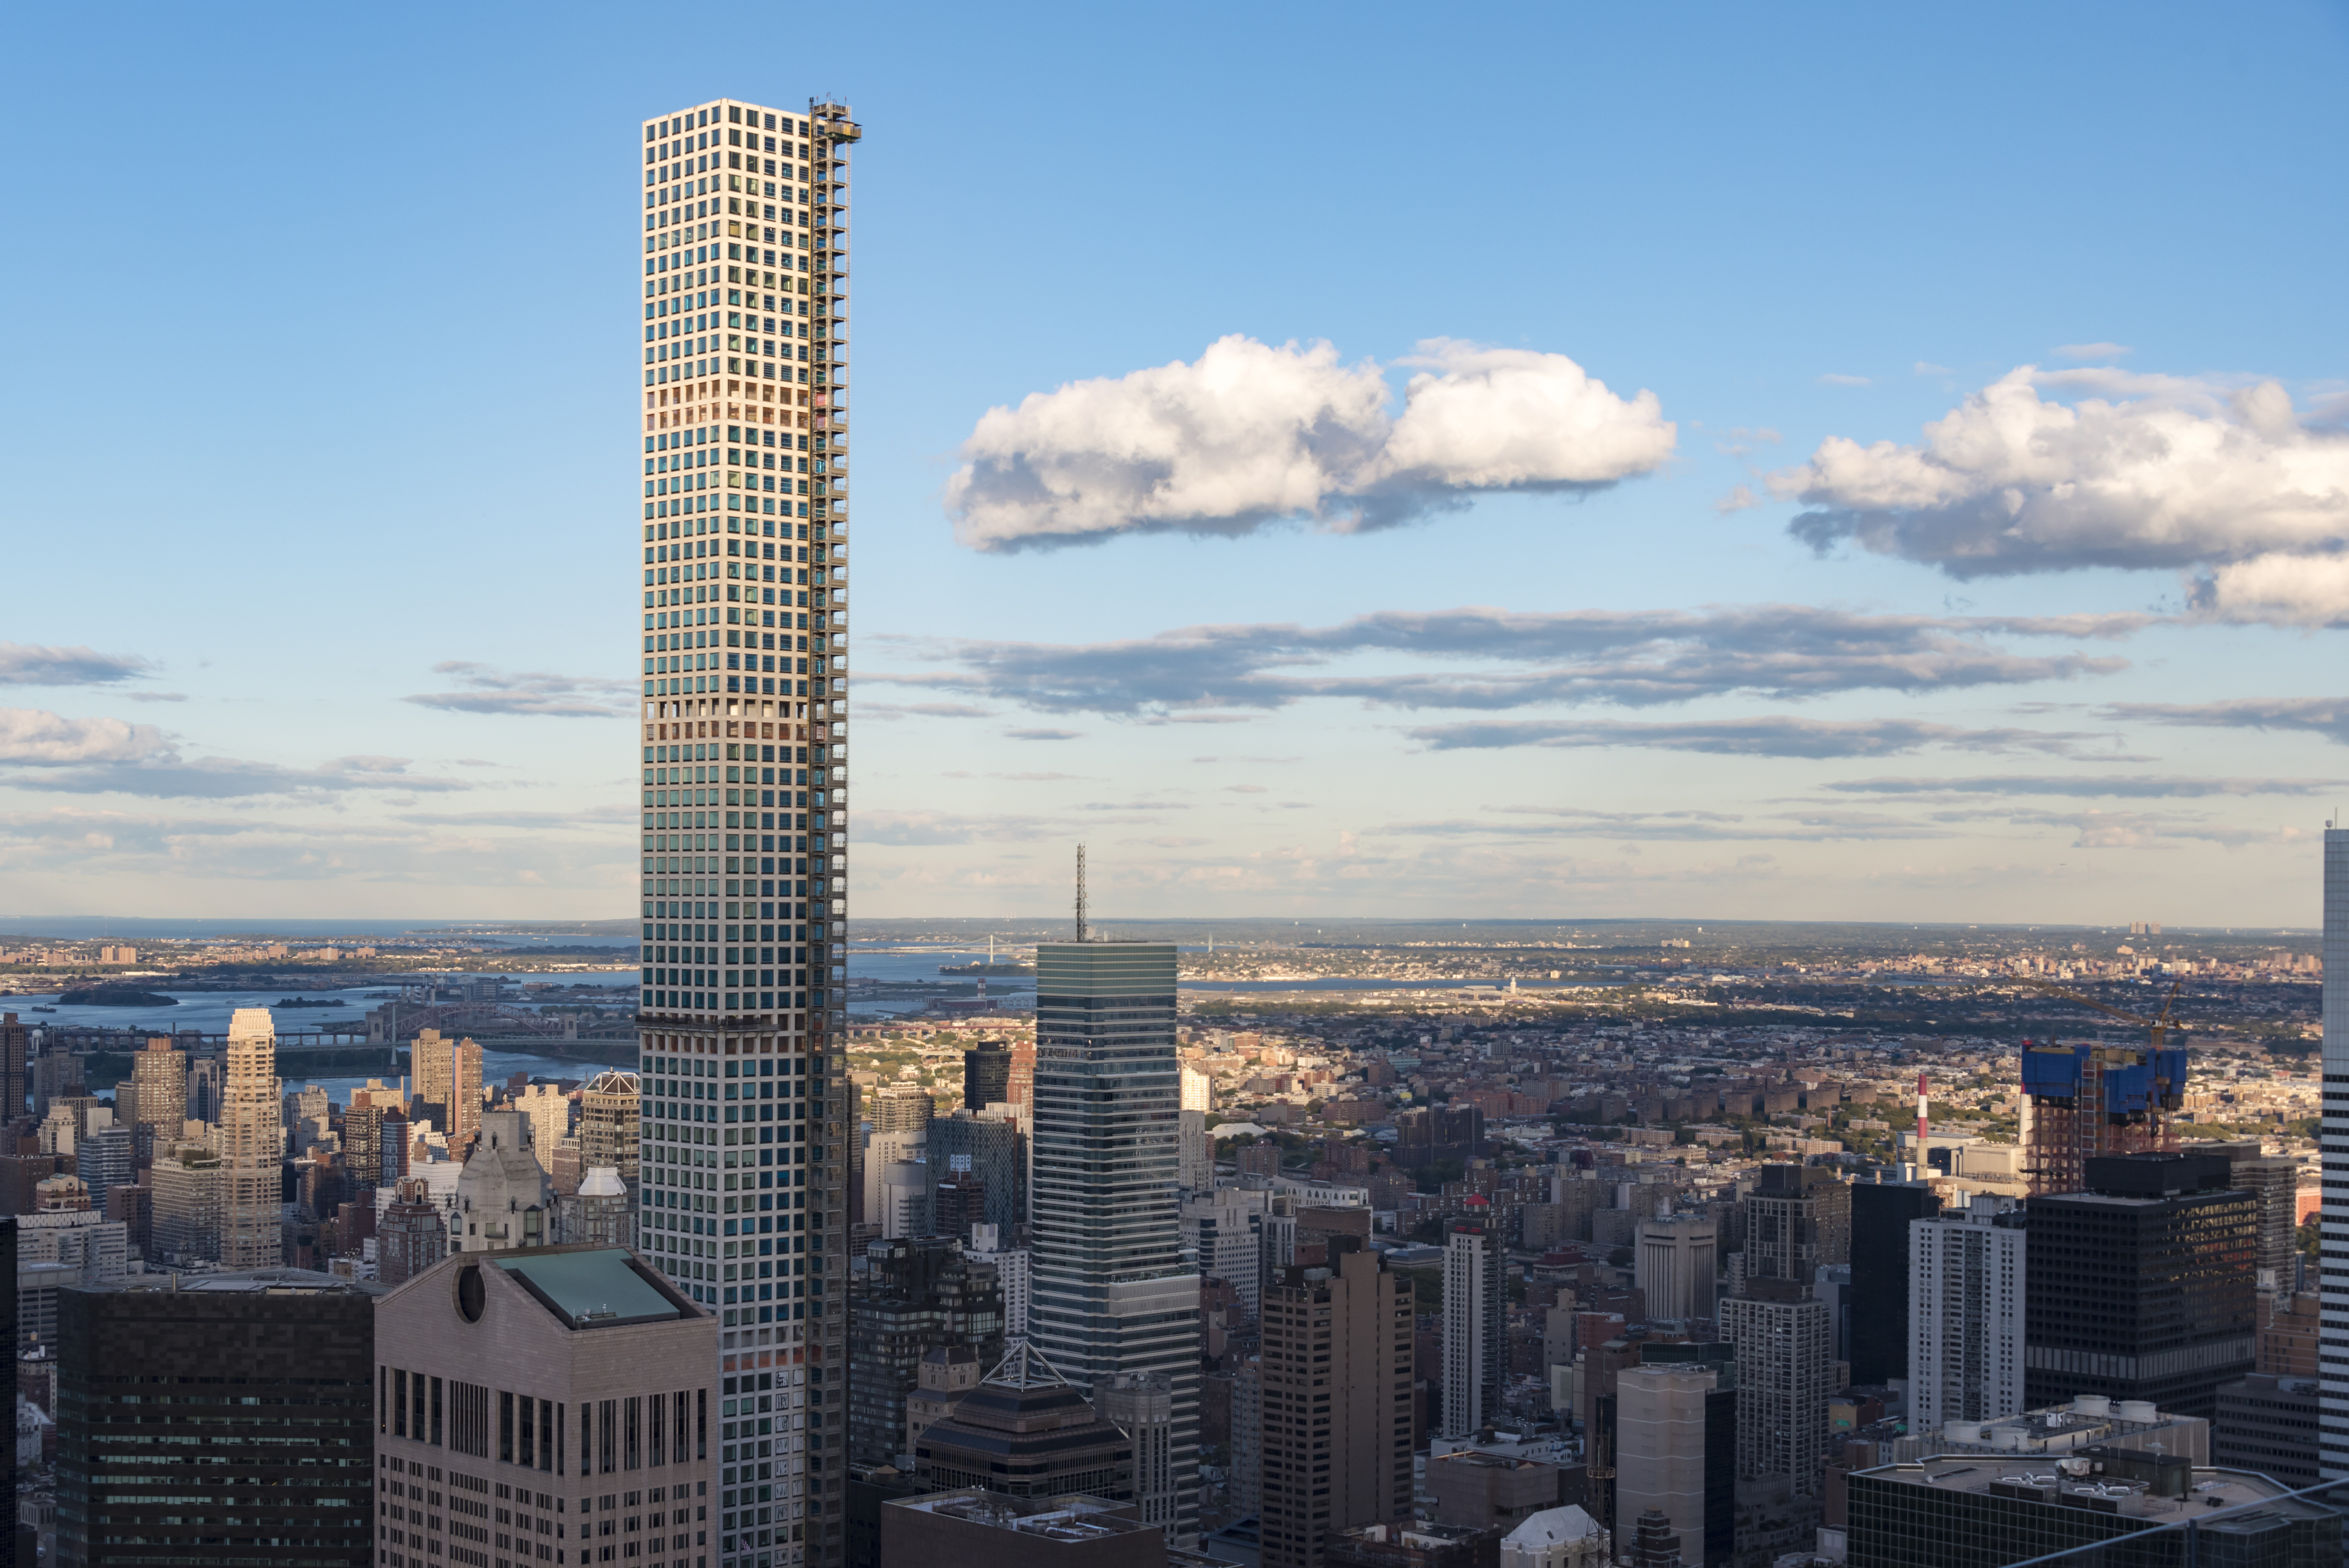 New York tours and attractions: 432 Park Avenue building